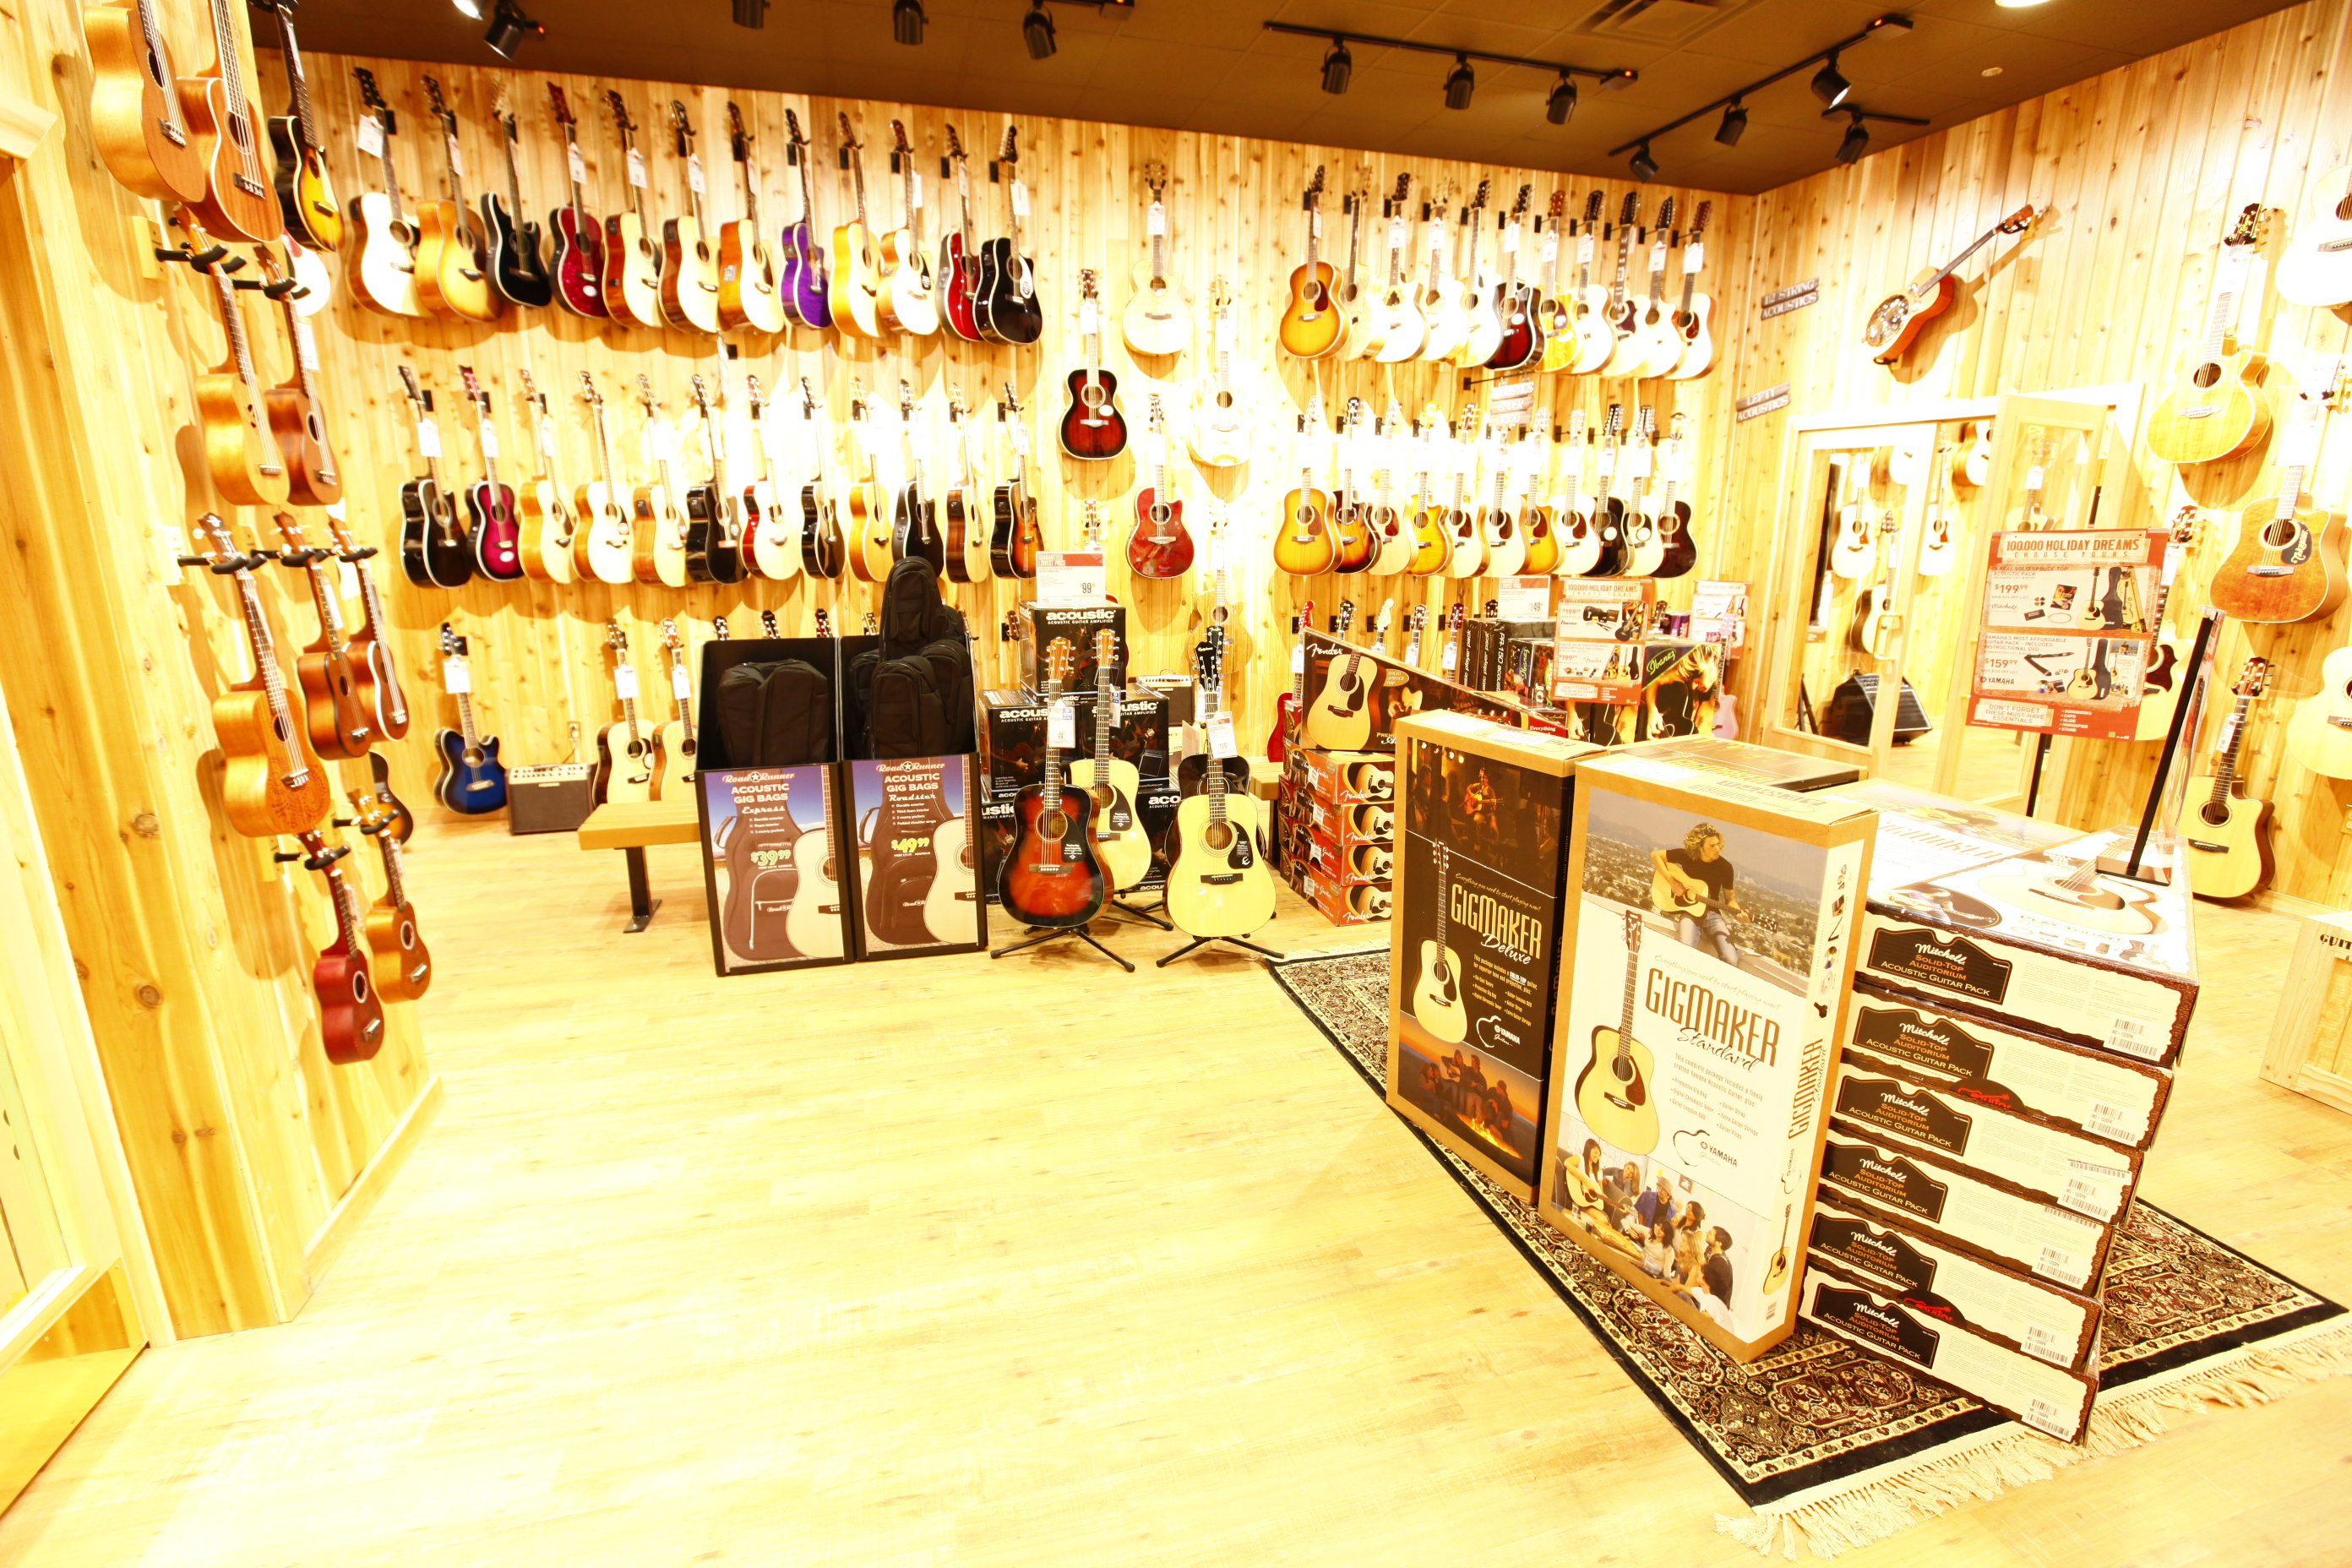 guitar center coupons near me in yonkers ny 10710 8coupons. Black Bedroom Furniture Sets. Home Design Ideas